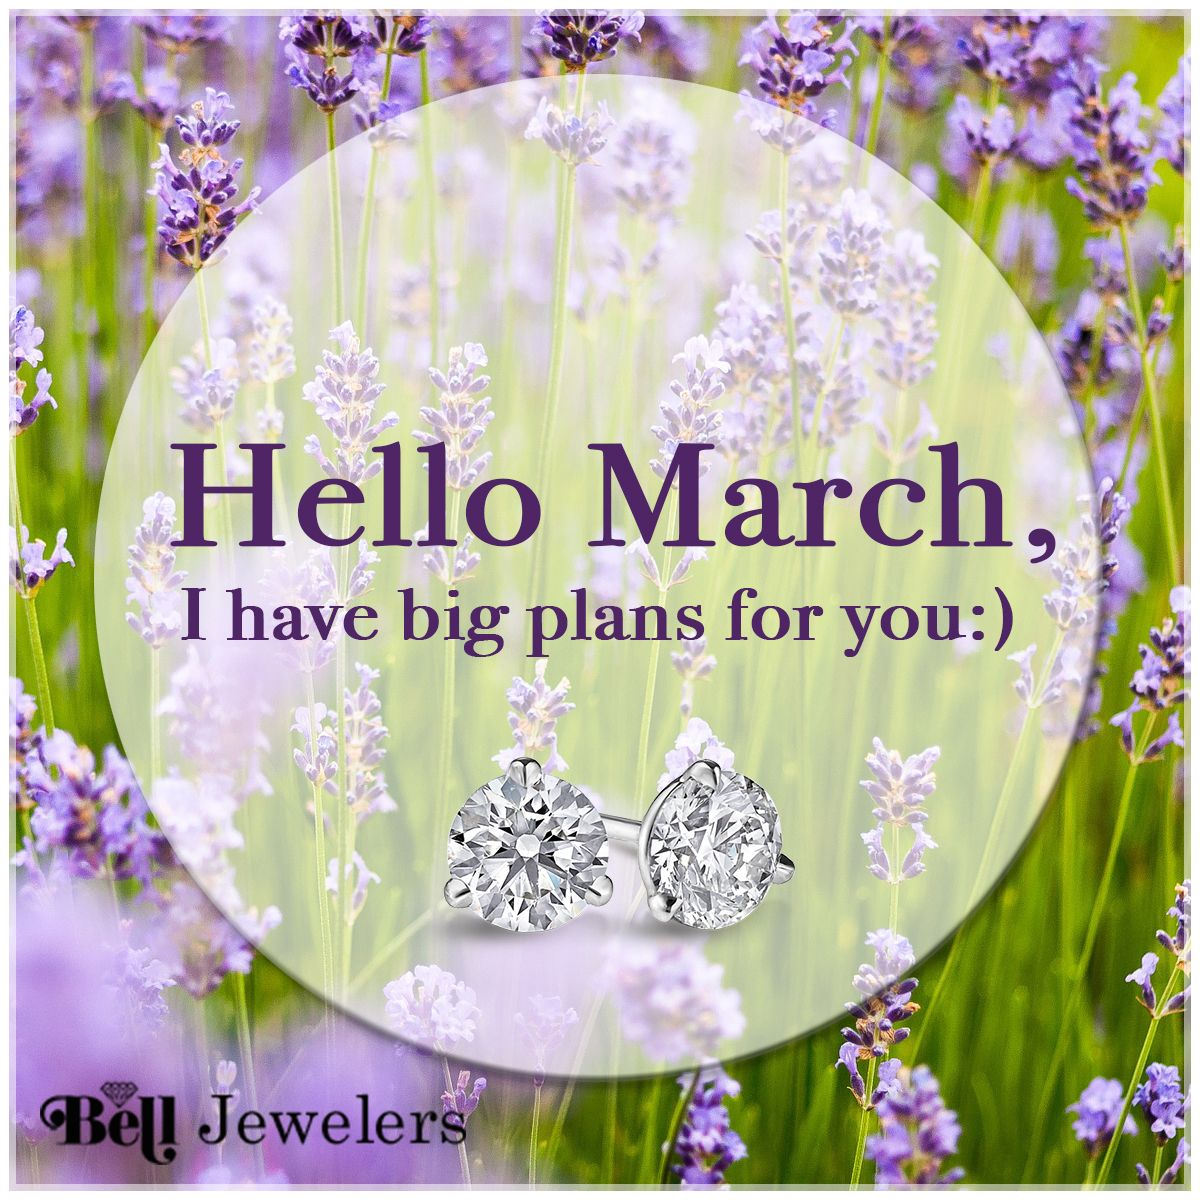 March into this month with sparkles in your future